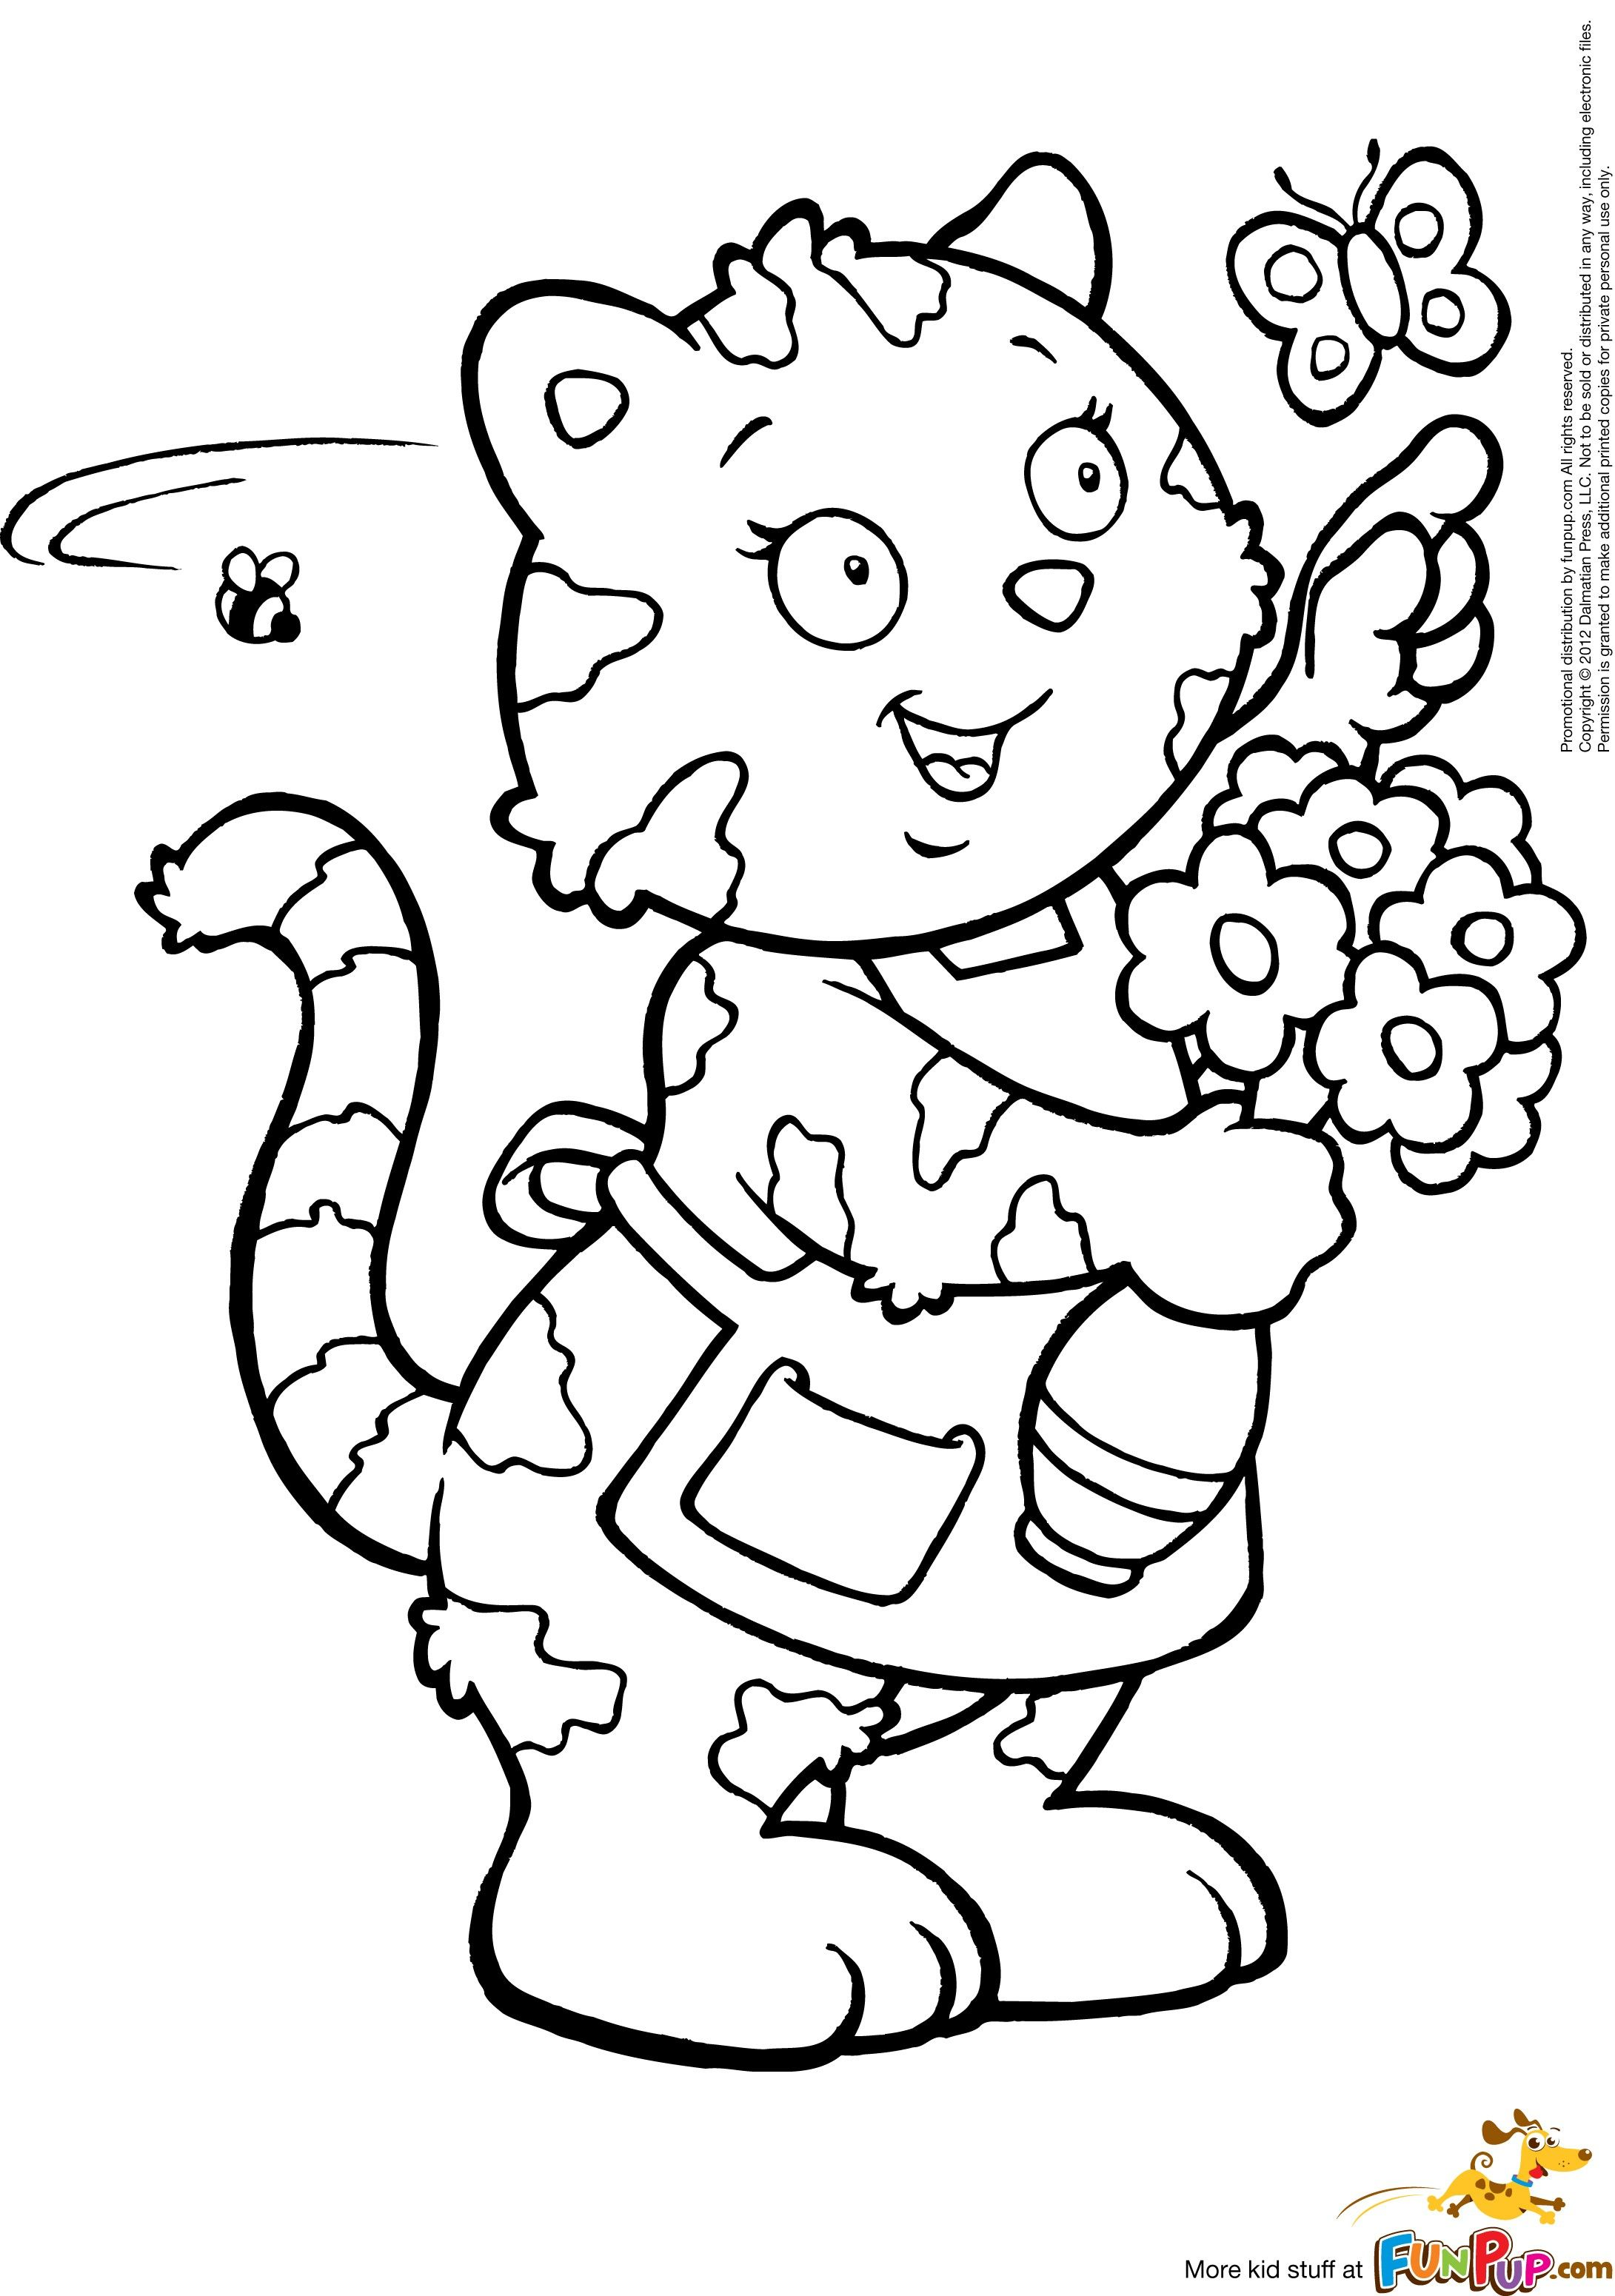 Kitty holding vase adult coloring pages pinterest kitty